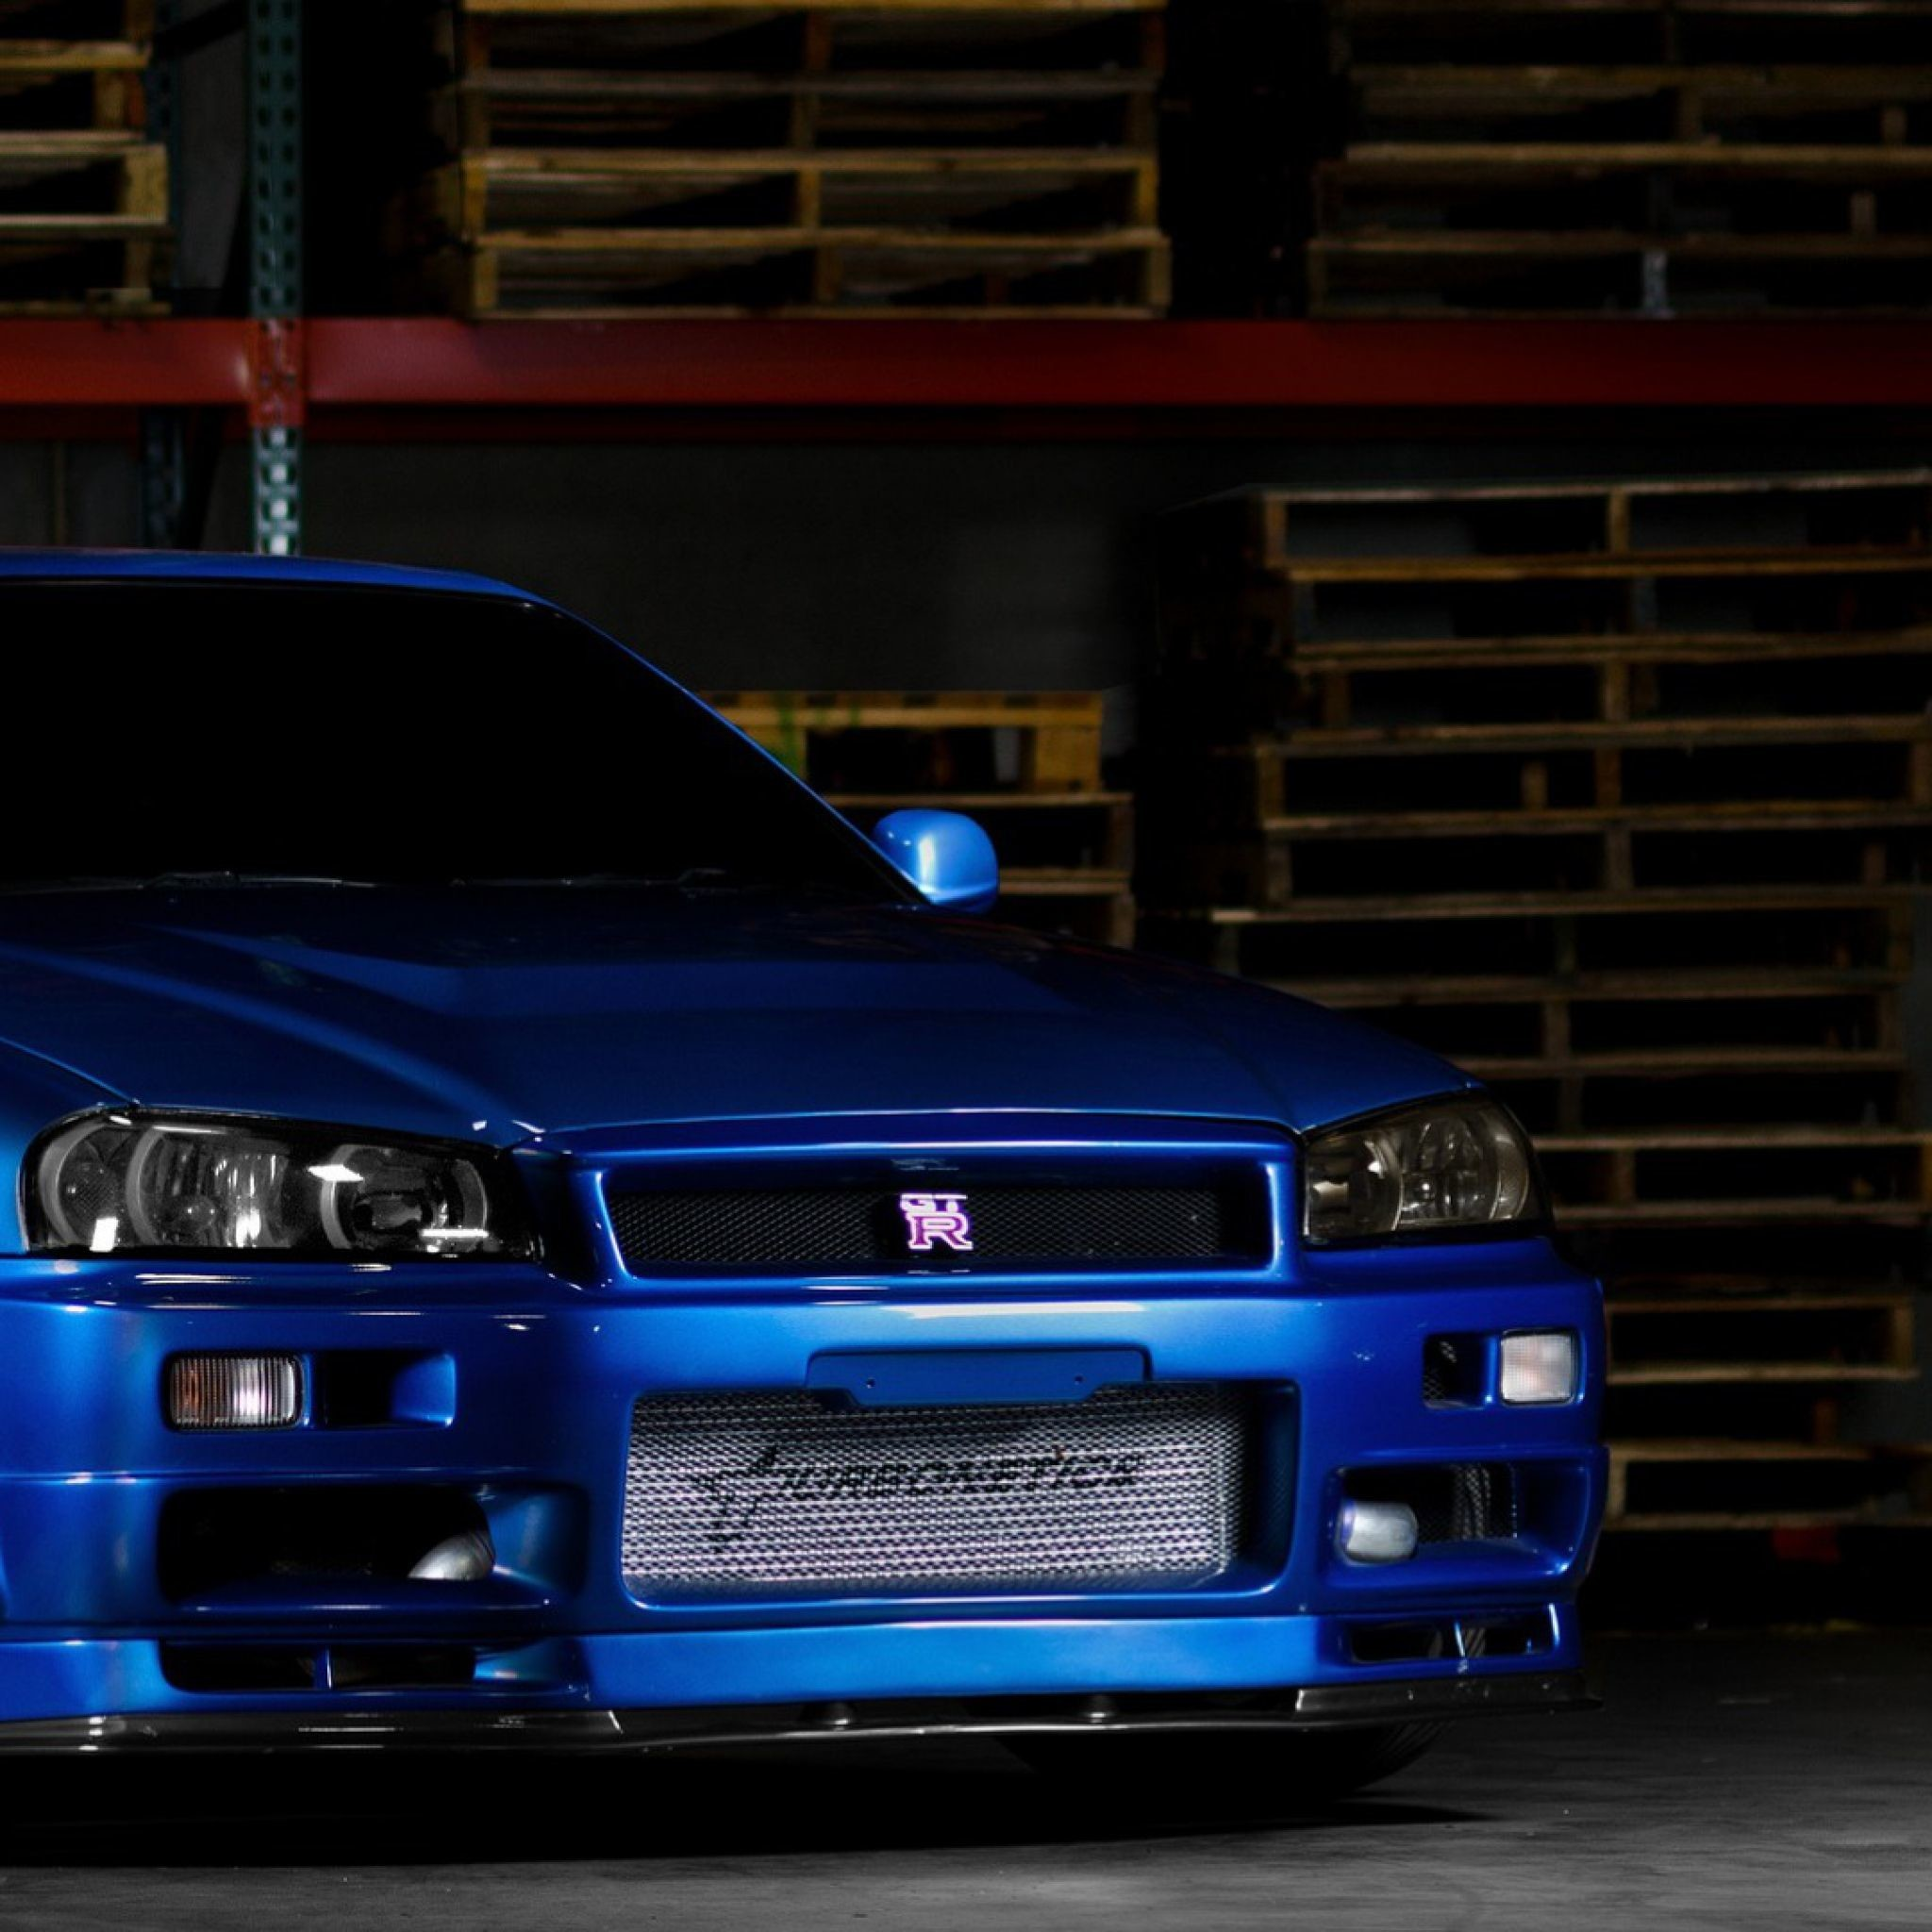 2048x2048 Download Wallpaper  Nissan skyline, Gtr, R34, Blue, Front .